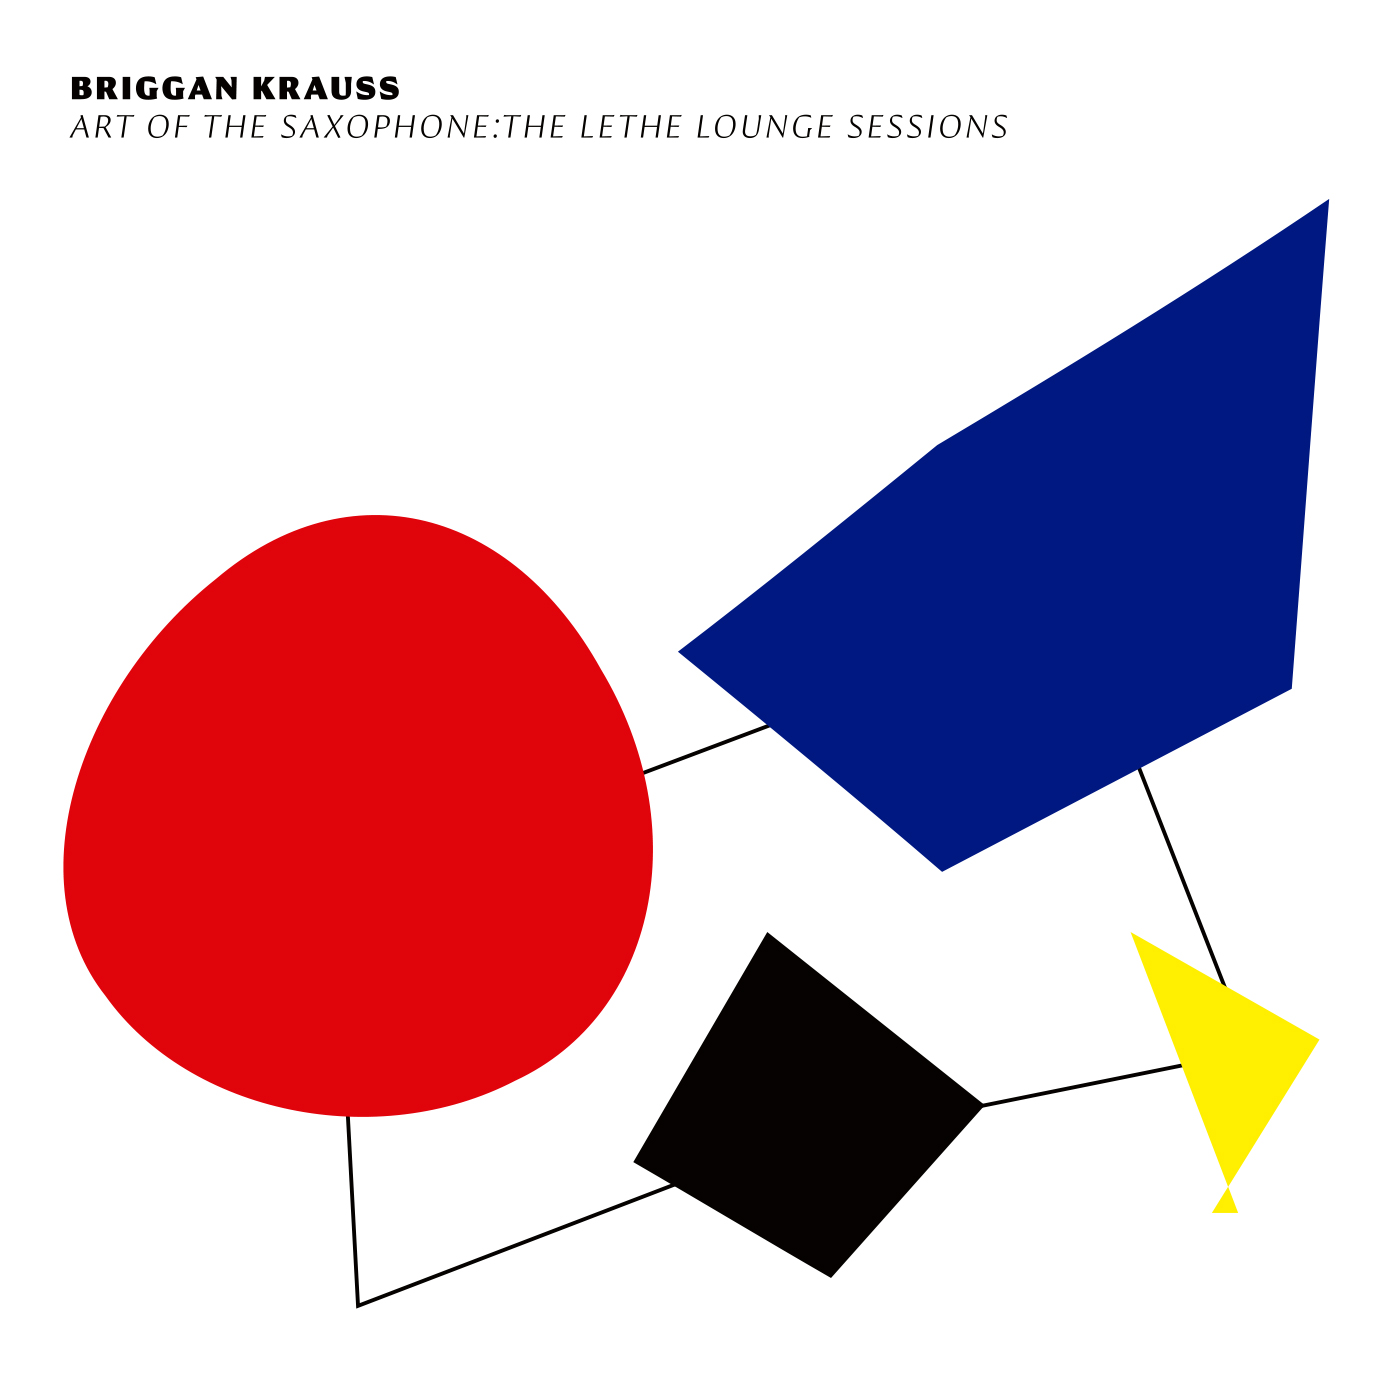 Art of the Saxophone: The Lethe Lounge Sessions by Briggan Krauss